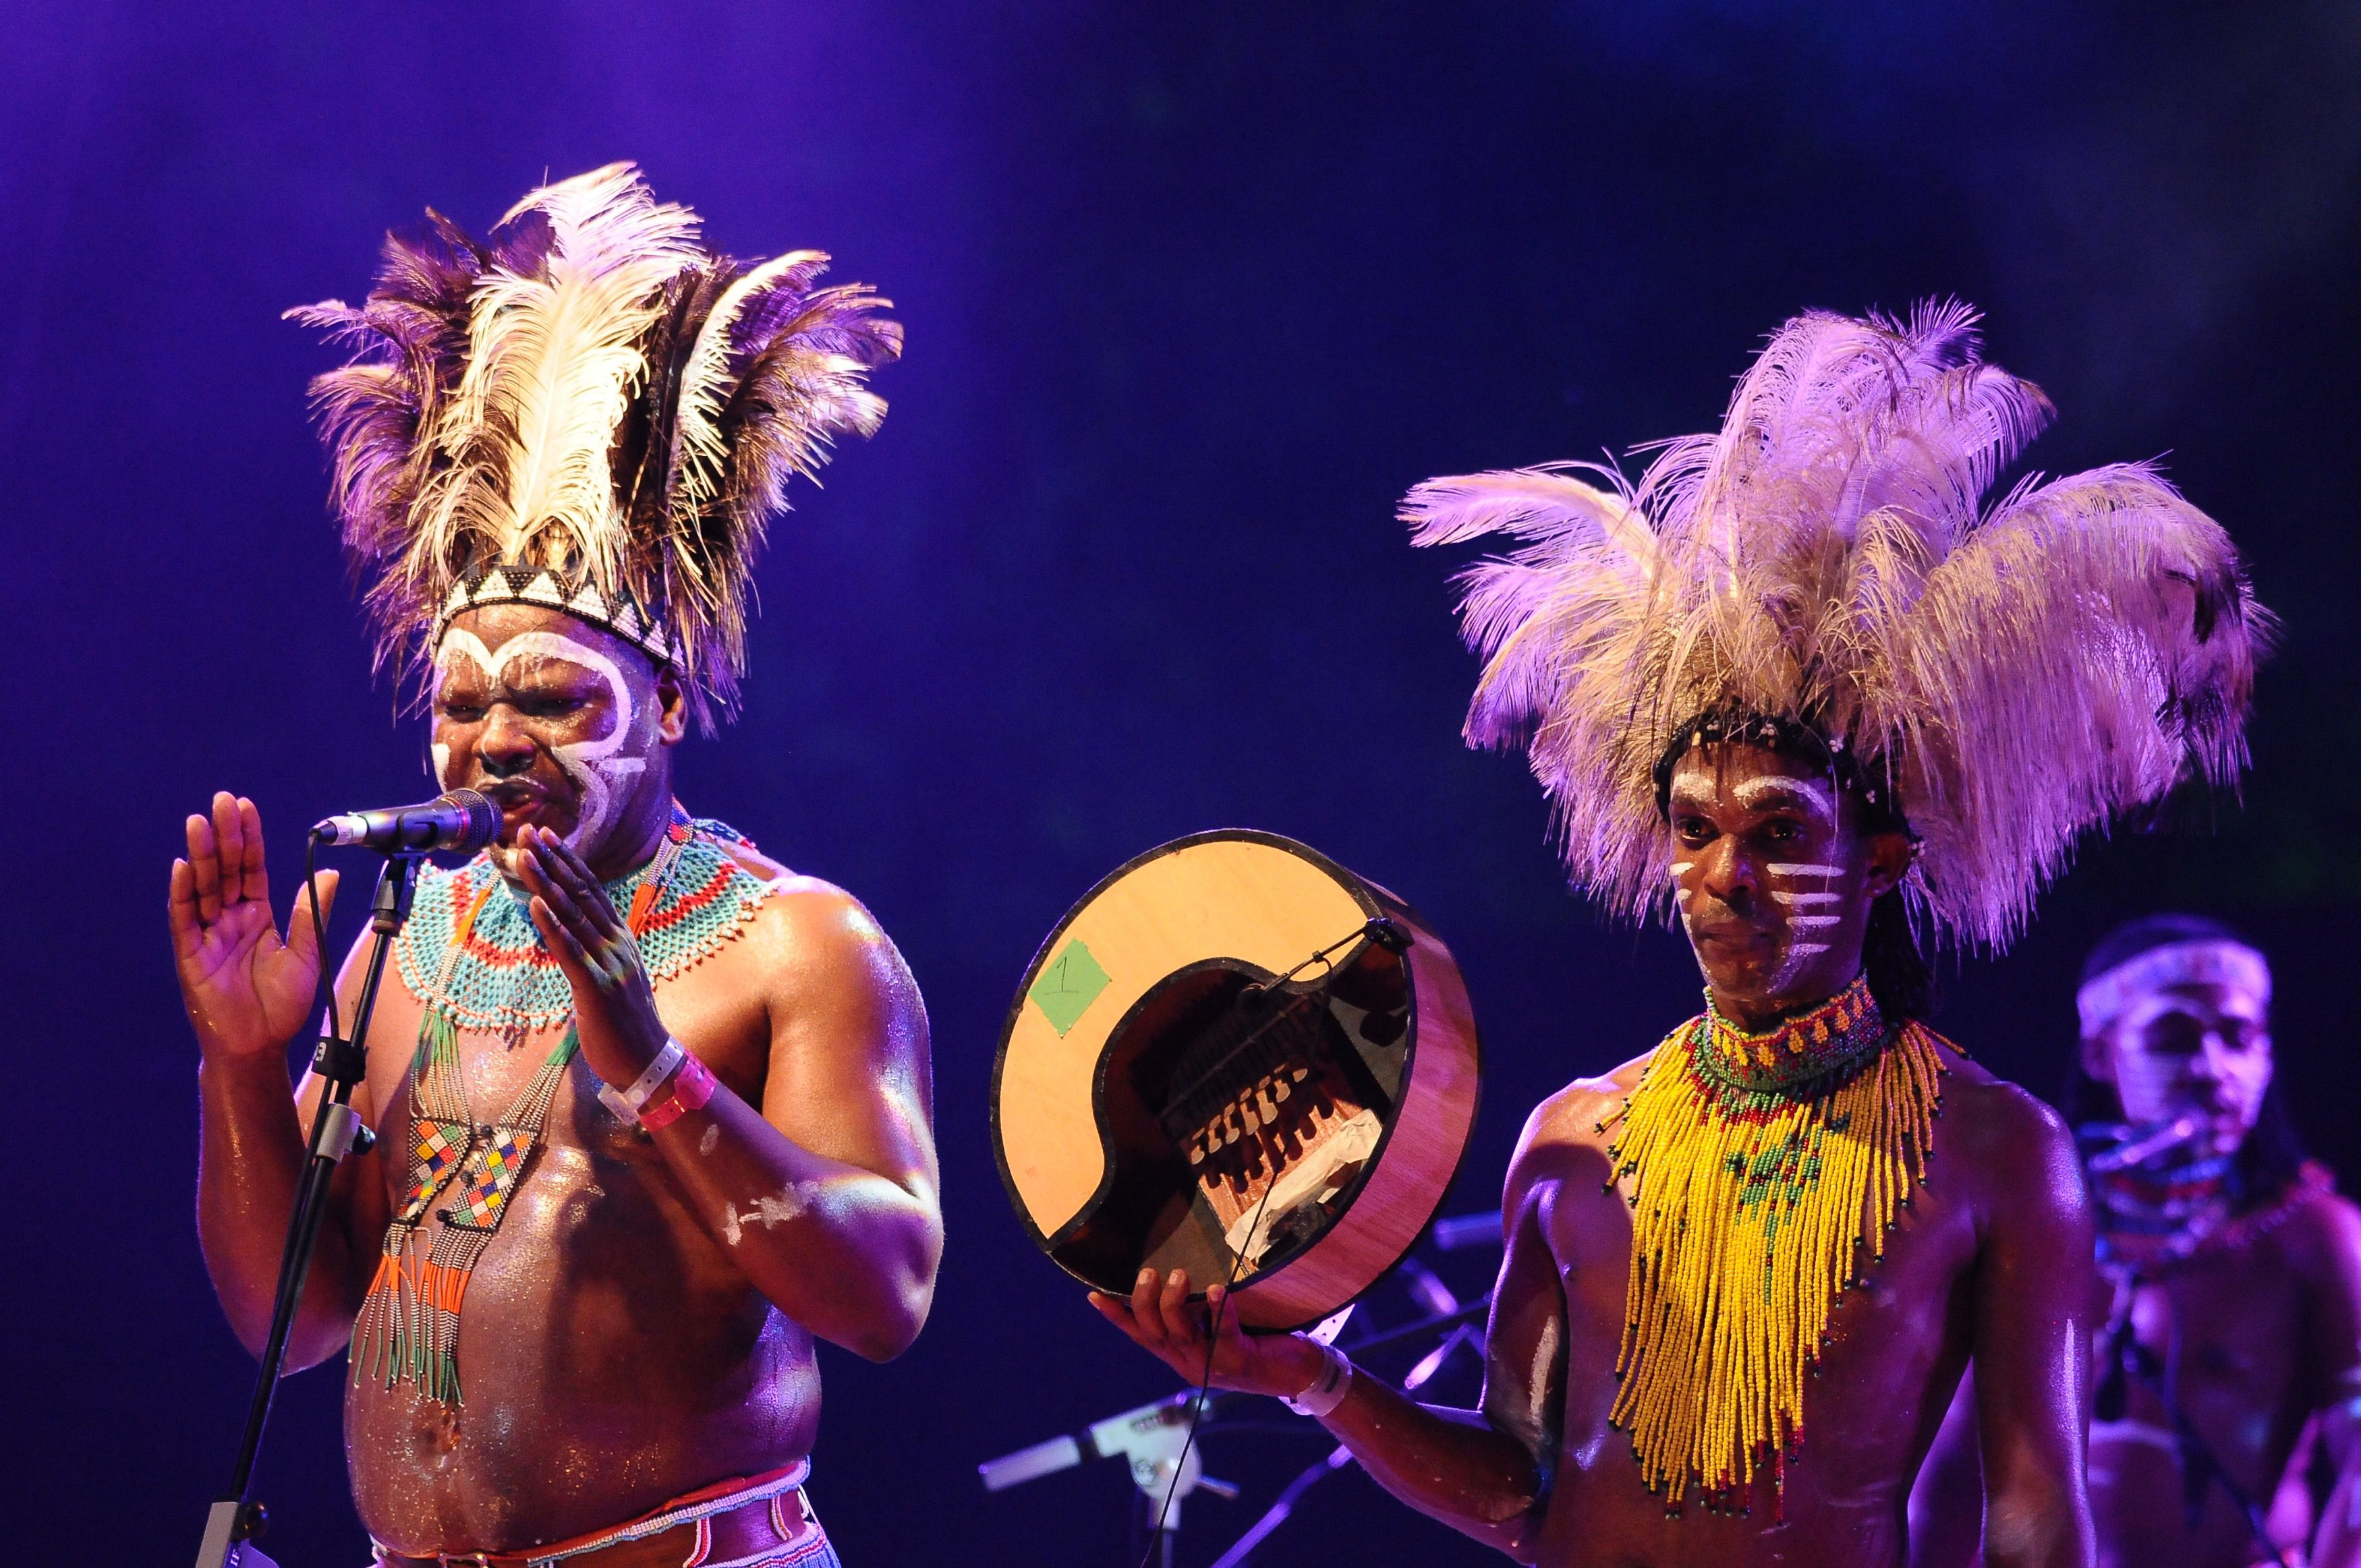 Performers at the Rainforest World Music Festival